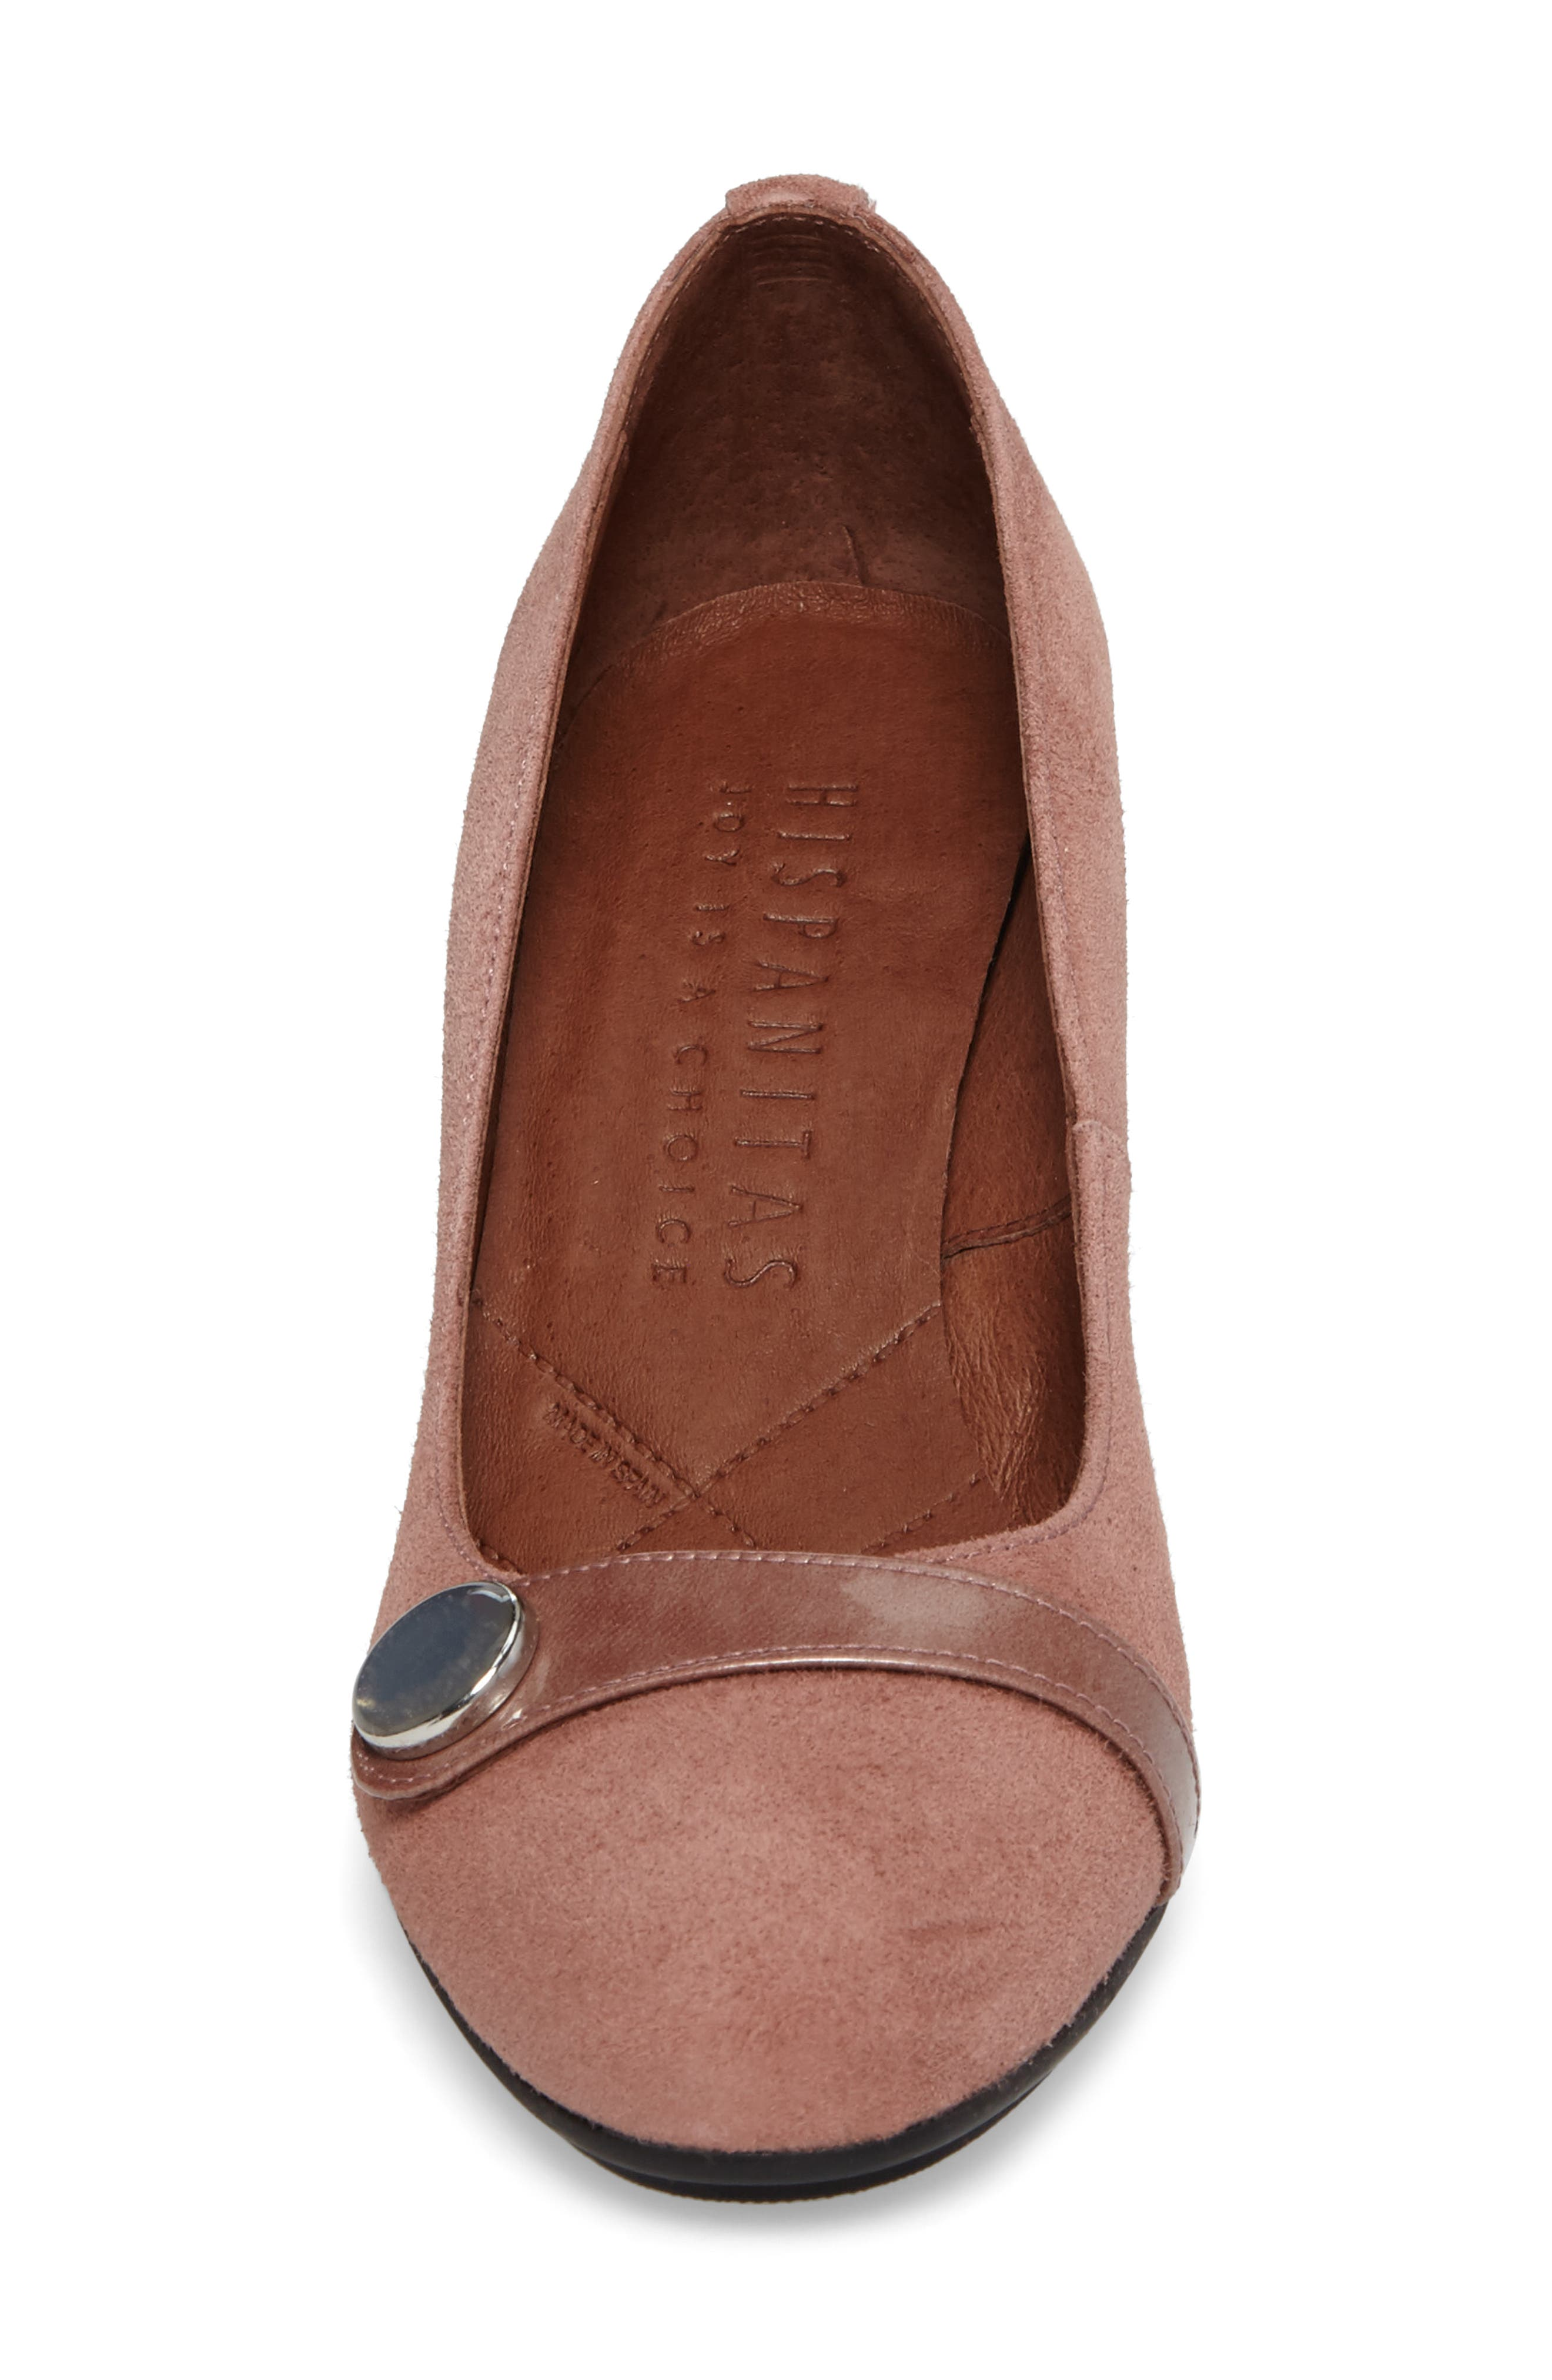 Gretchen Pump,                             Alternate thumbnail 4, color,                             Rose Leather